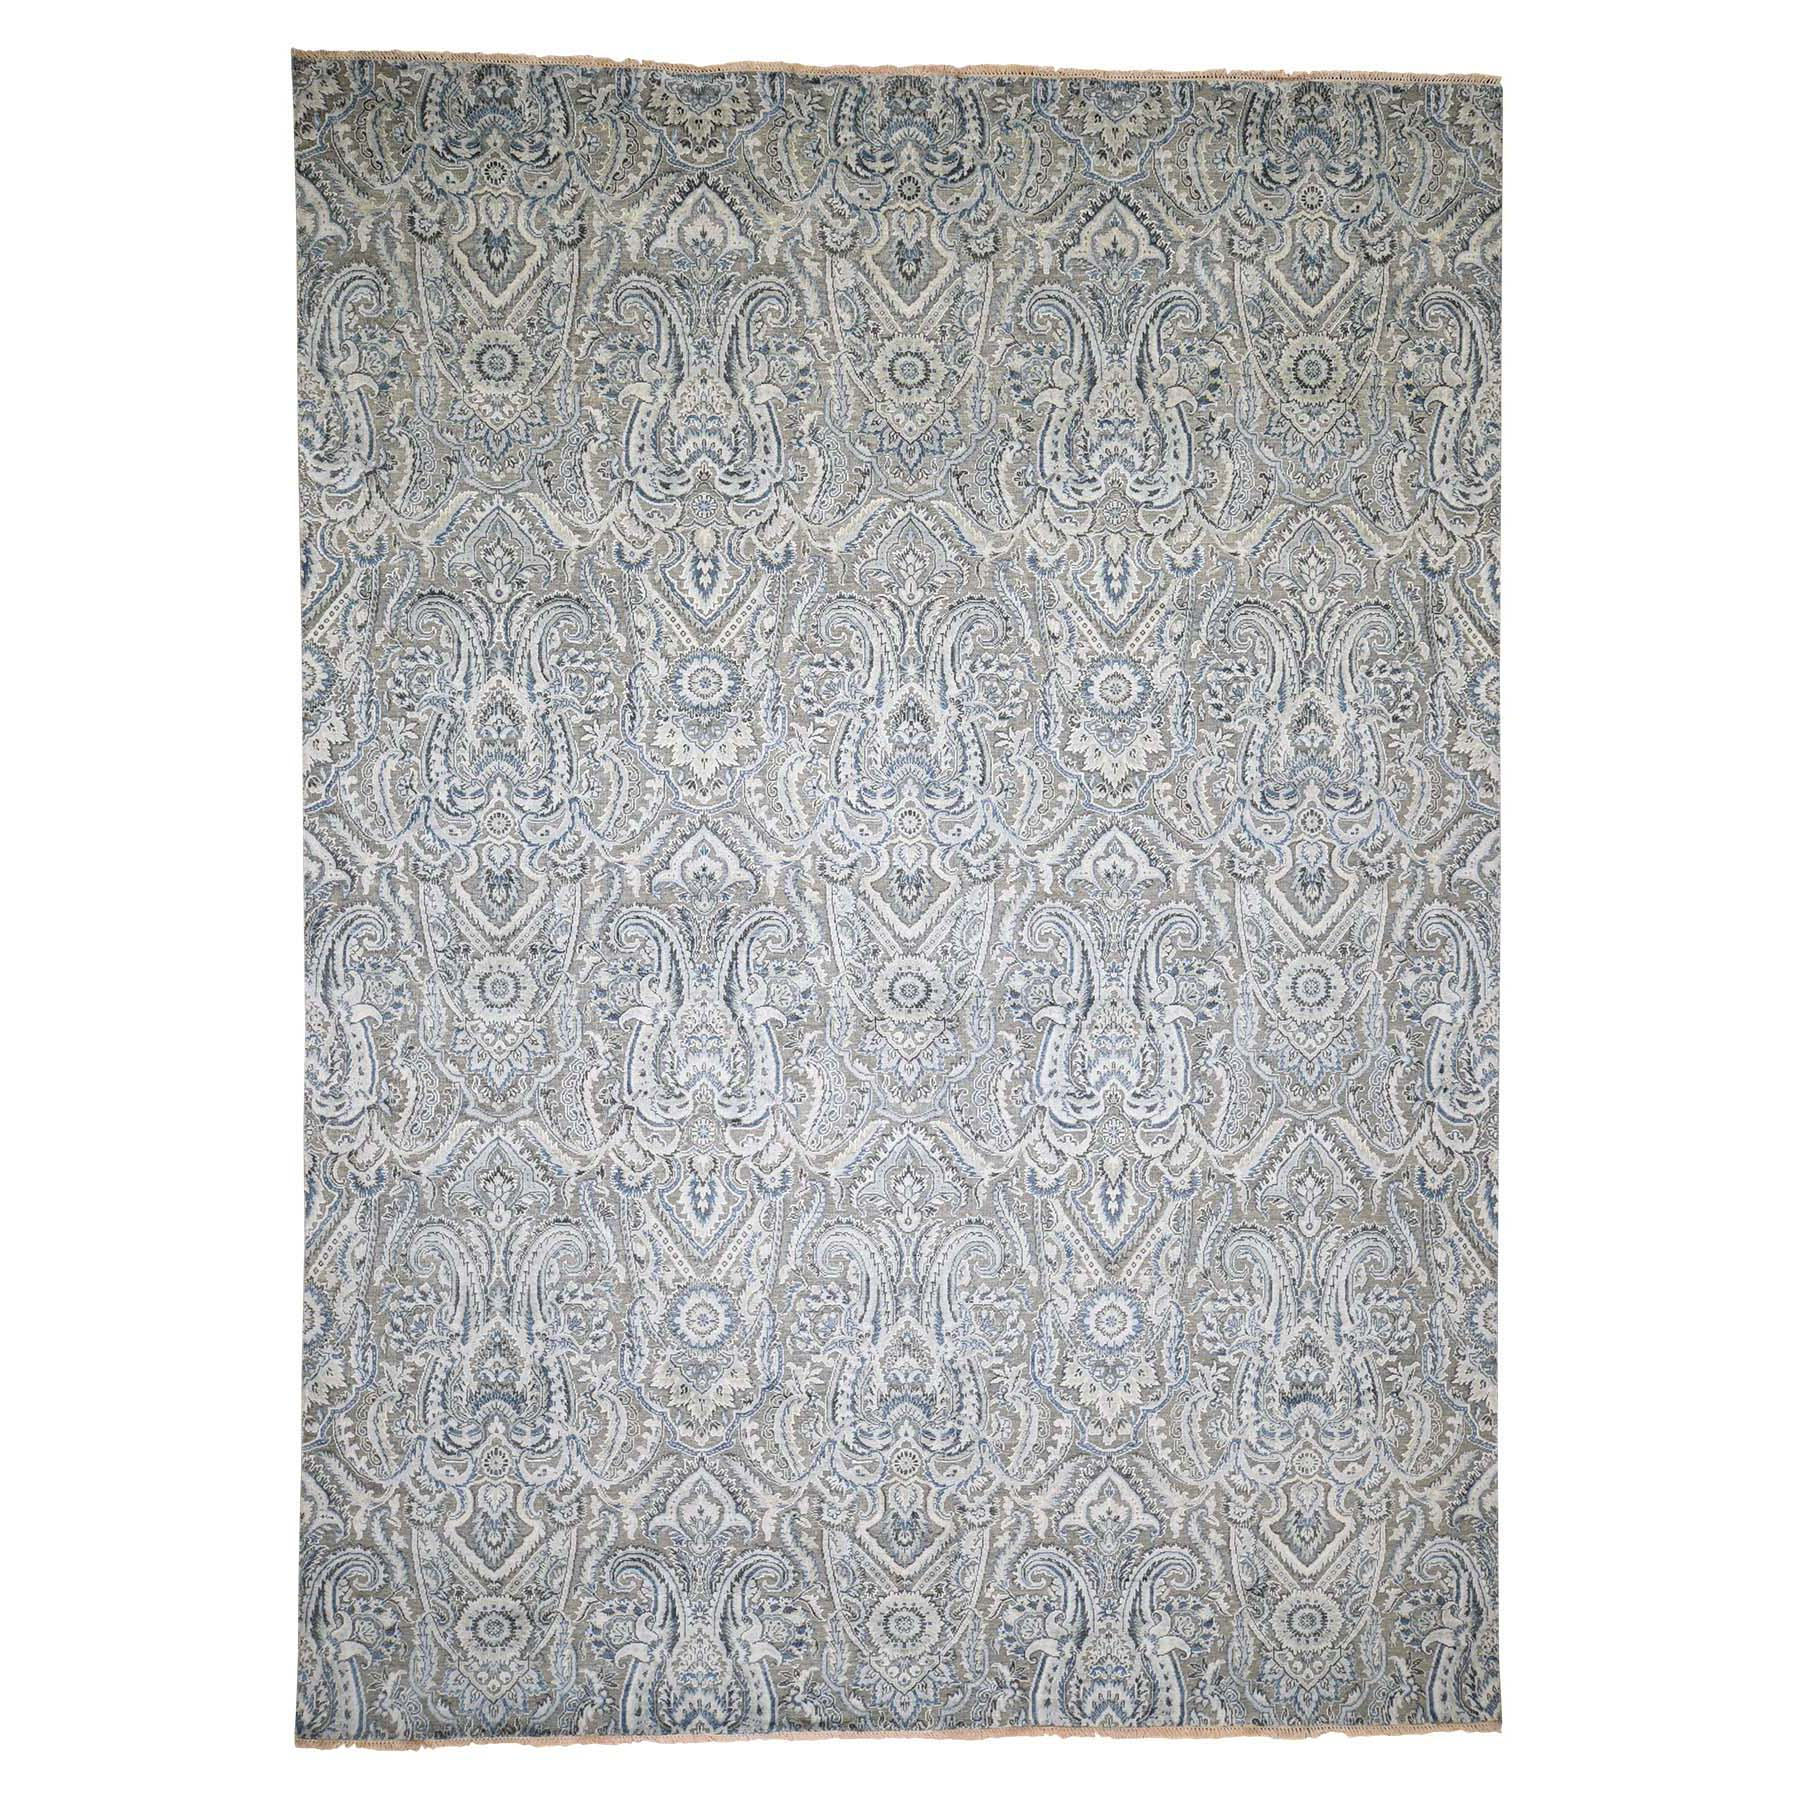 "9'X12'1"" Pure Silk Oxidized Wool Paisley Flower Design Hand-Knotted Rug moadad8c"